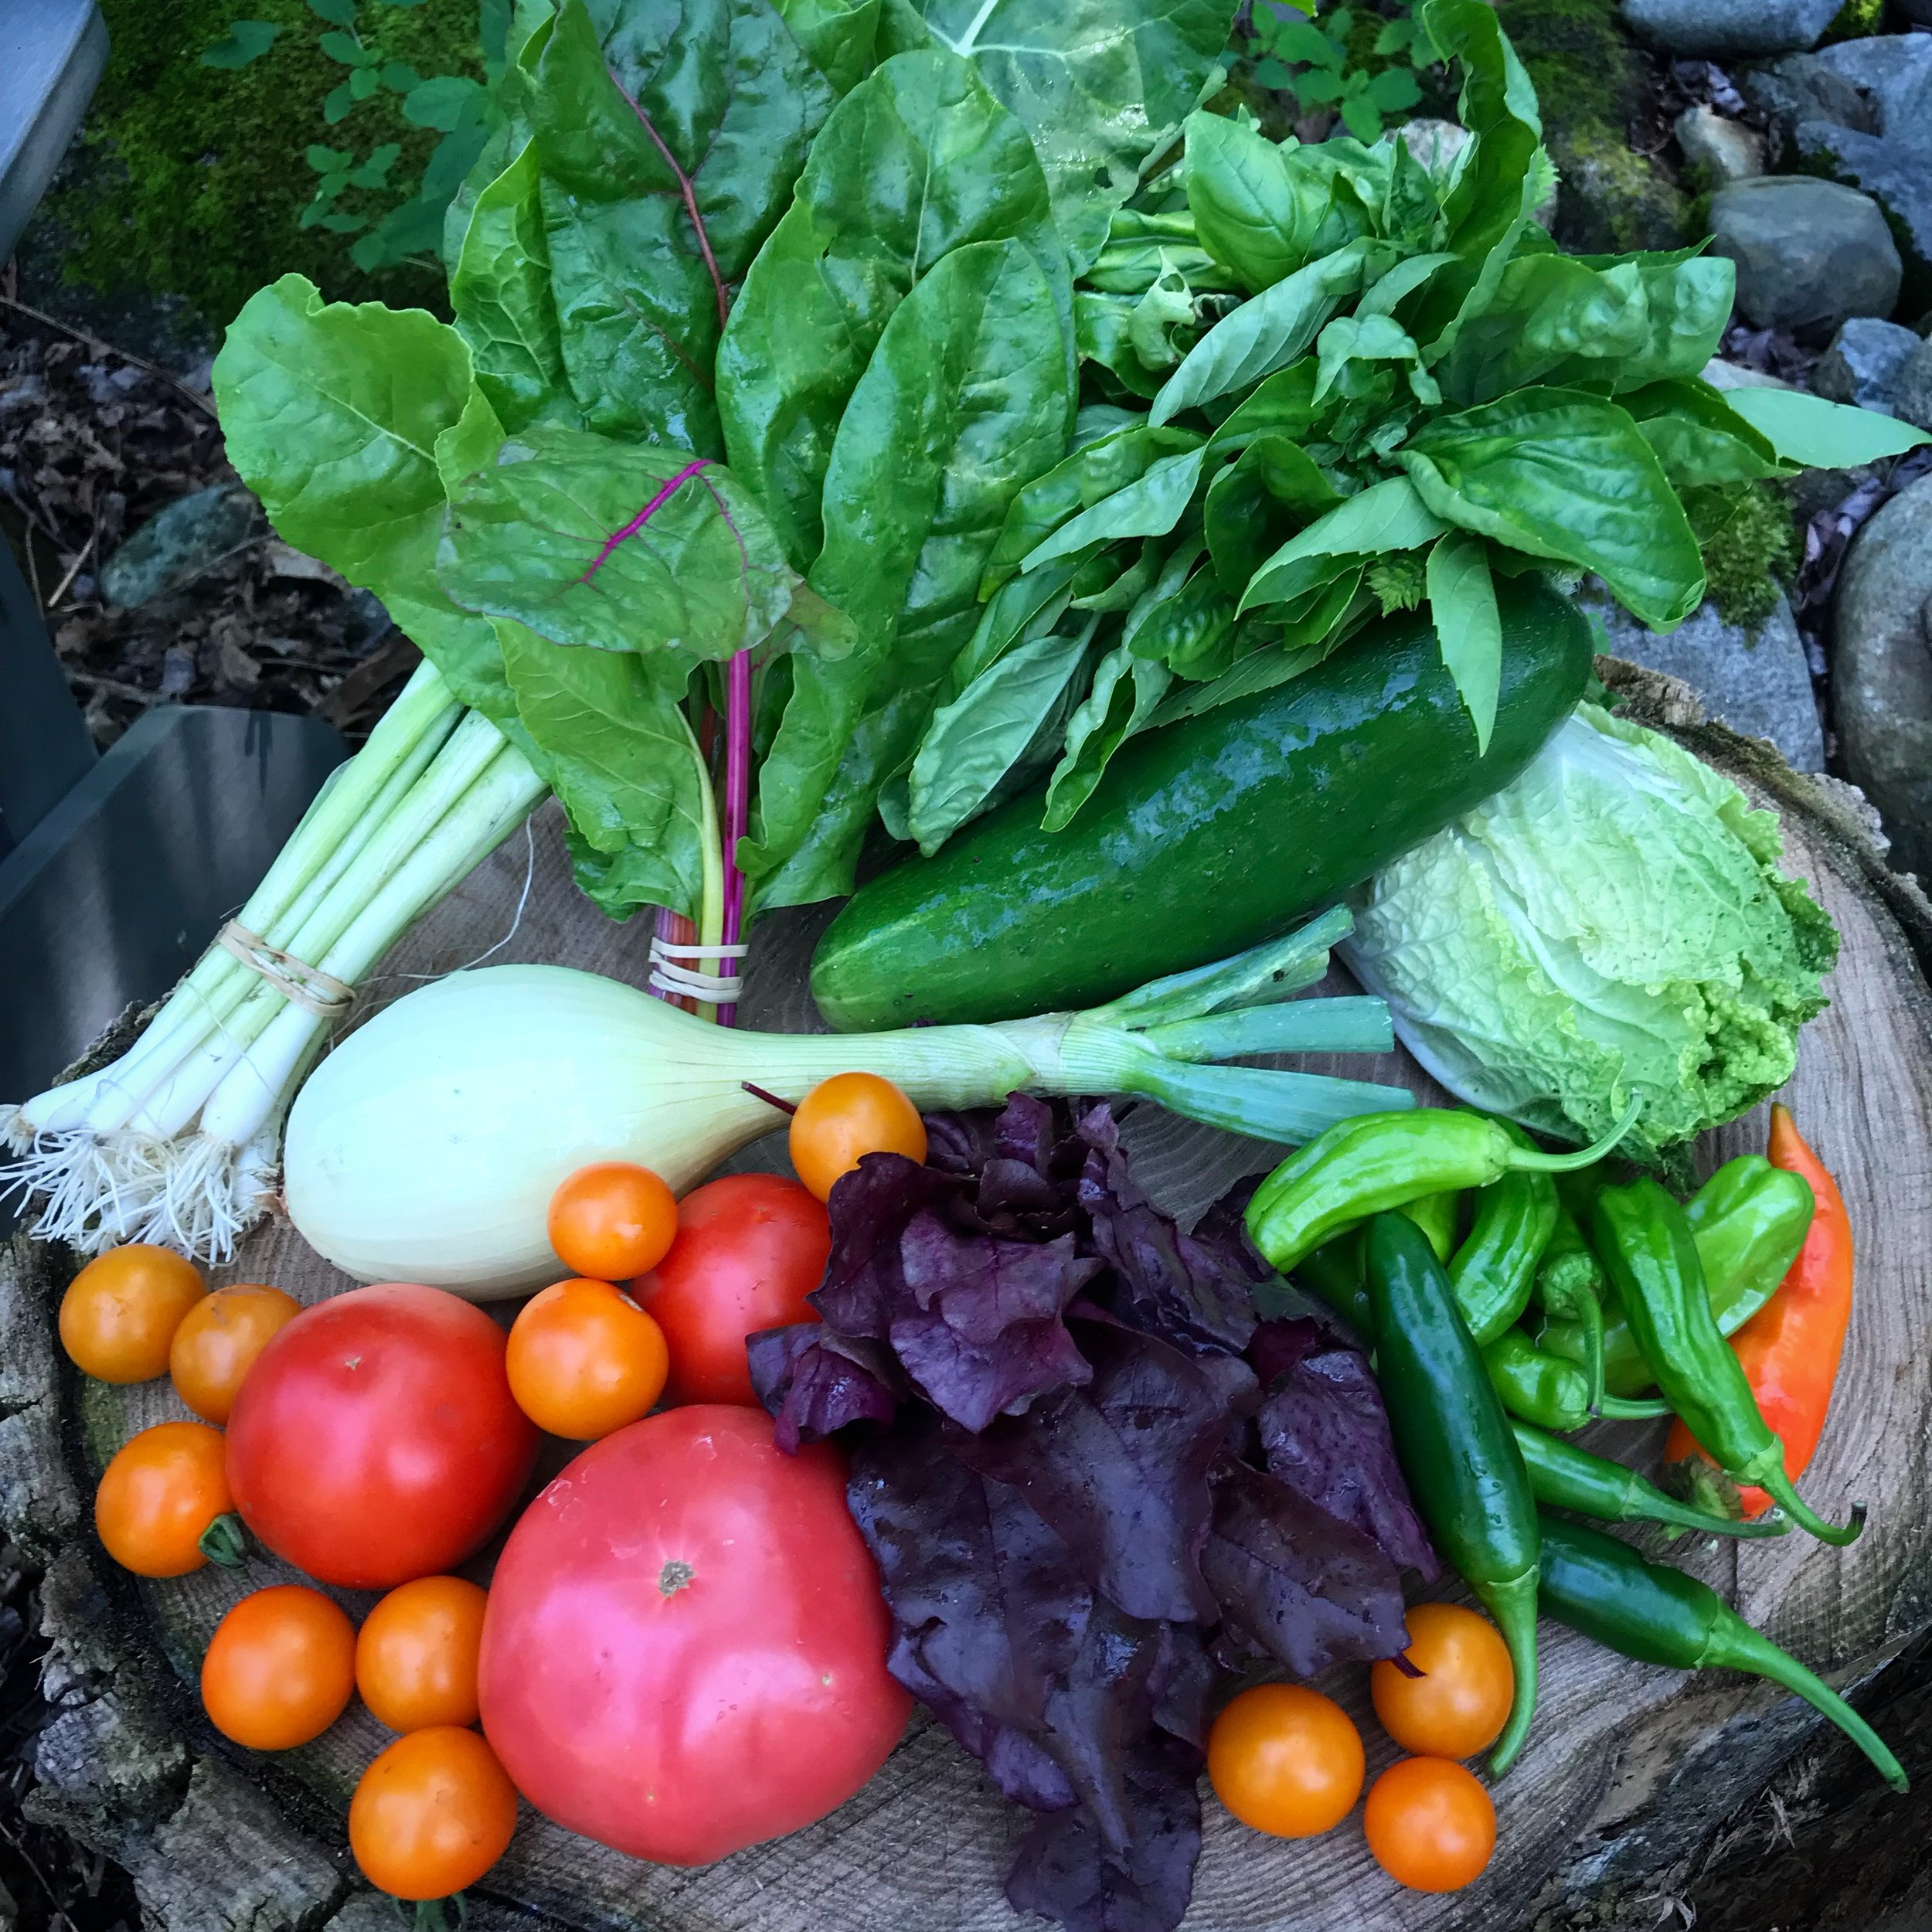 Last week's CSA and the debut of tomatoes in the CSA!